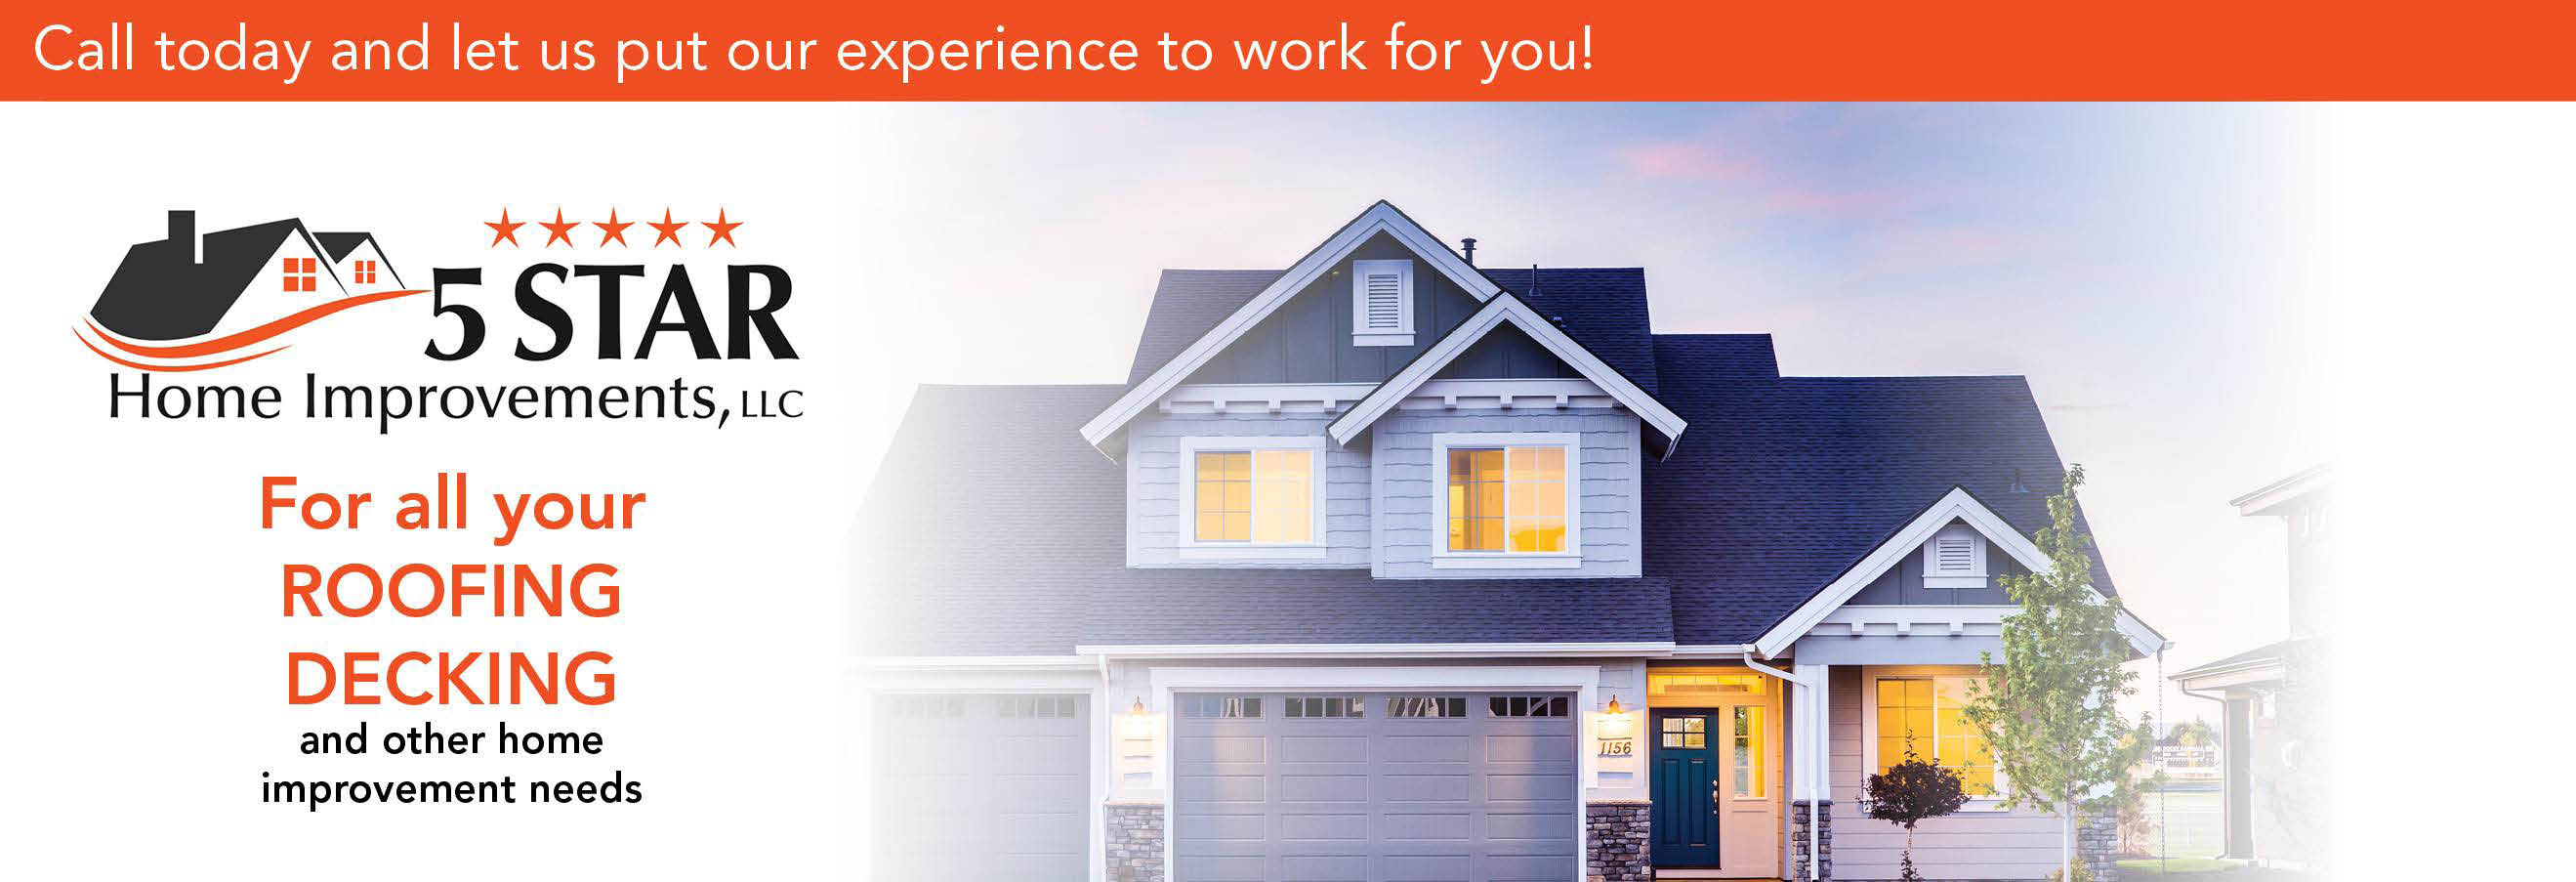 5 STAR HOME IMPROVEMENTS, LLC in Hagerstown, MD - Local Coupons ...